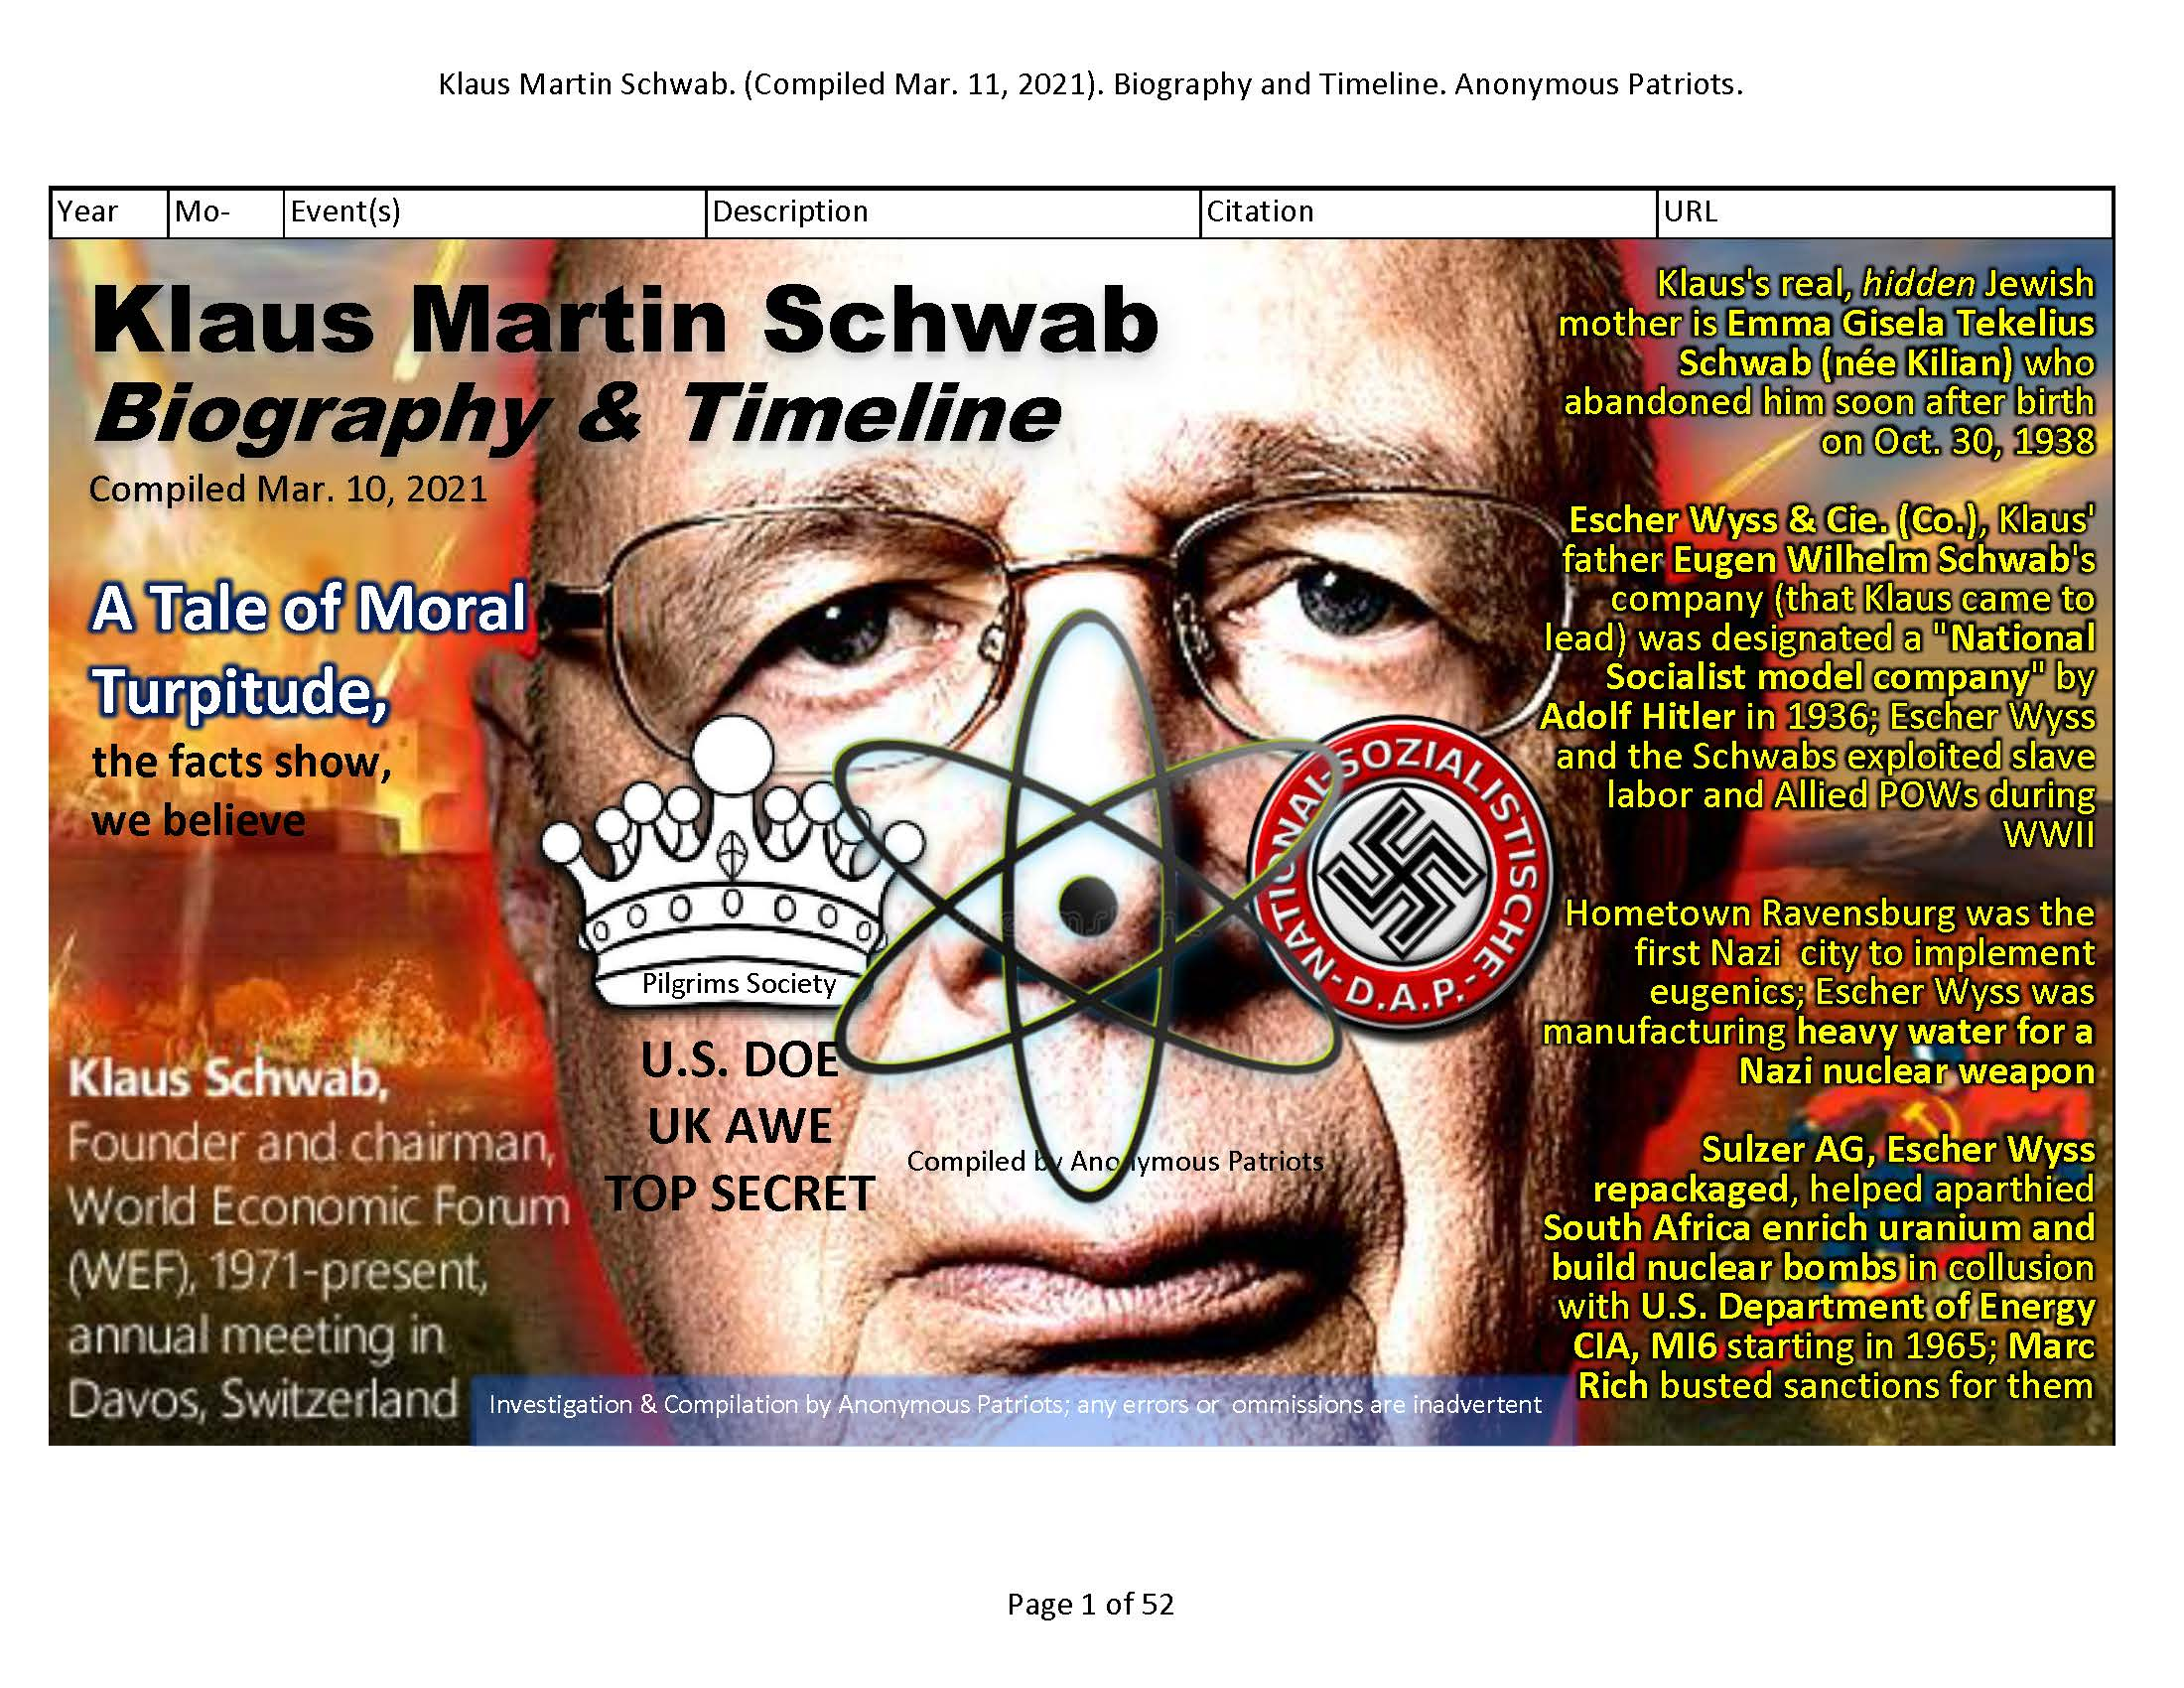 Sir Klaus Martin Schwab. (Compiled Mar. 11, 2021). Biography and Timeline. Anonymous Patriots.